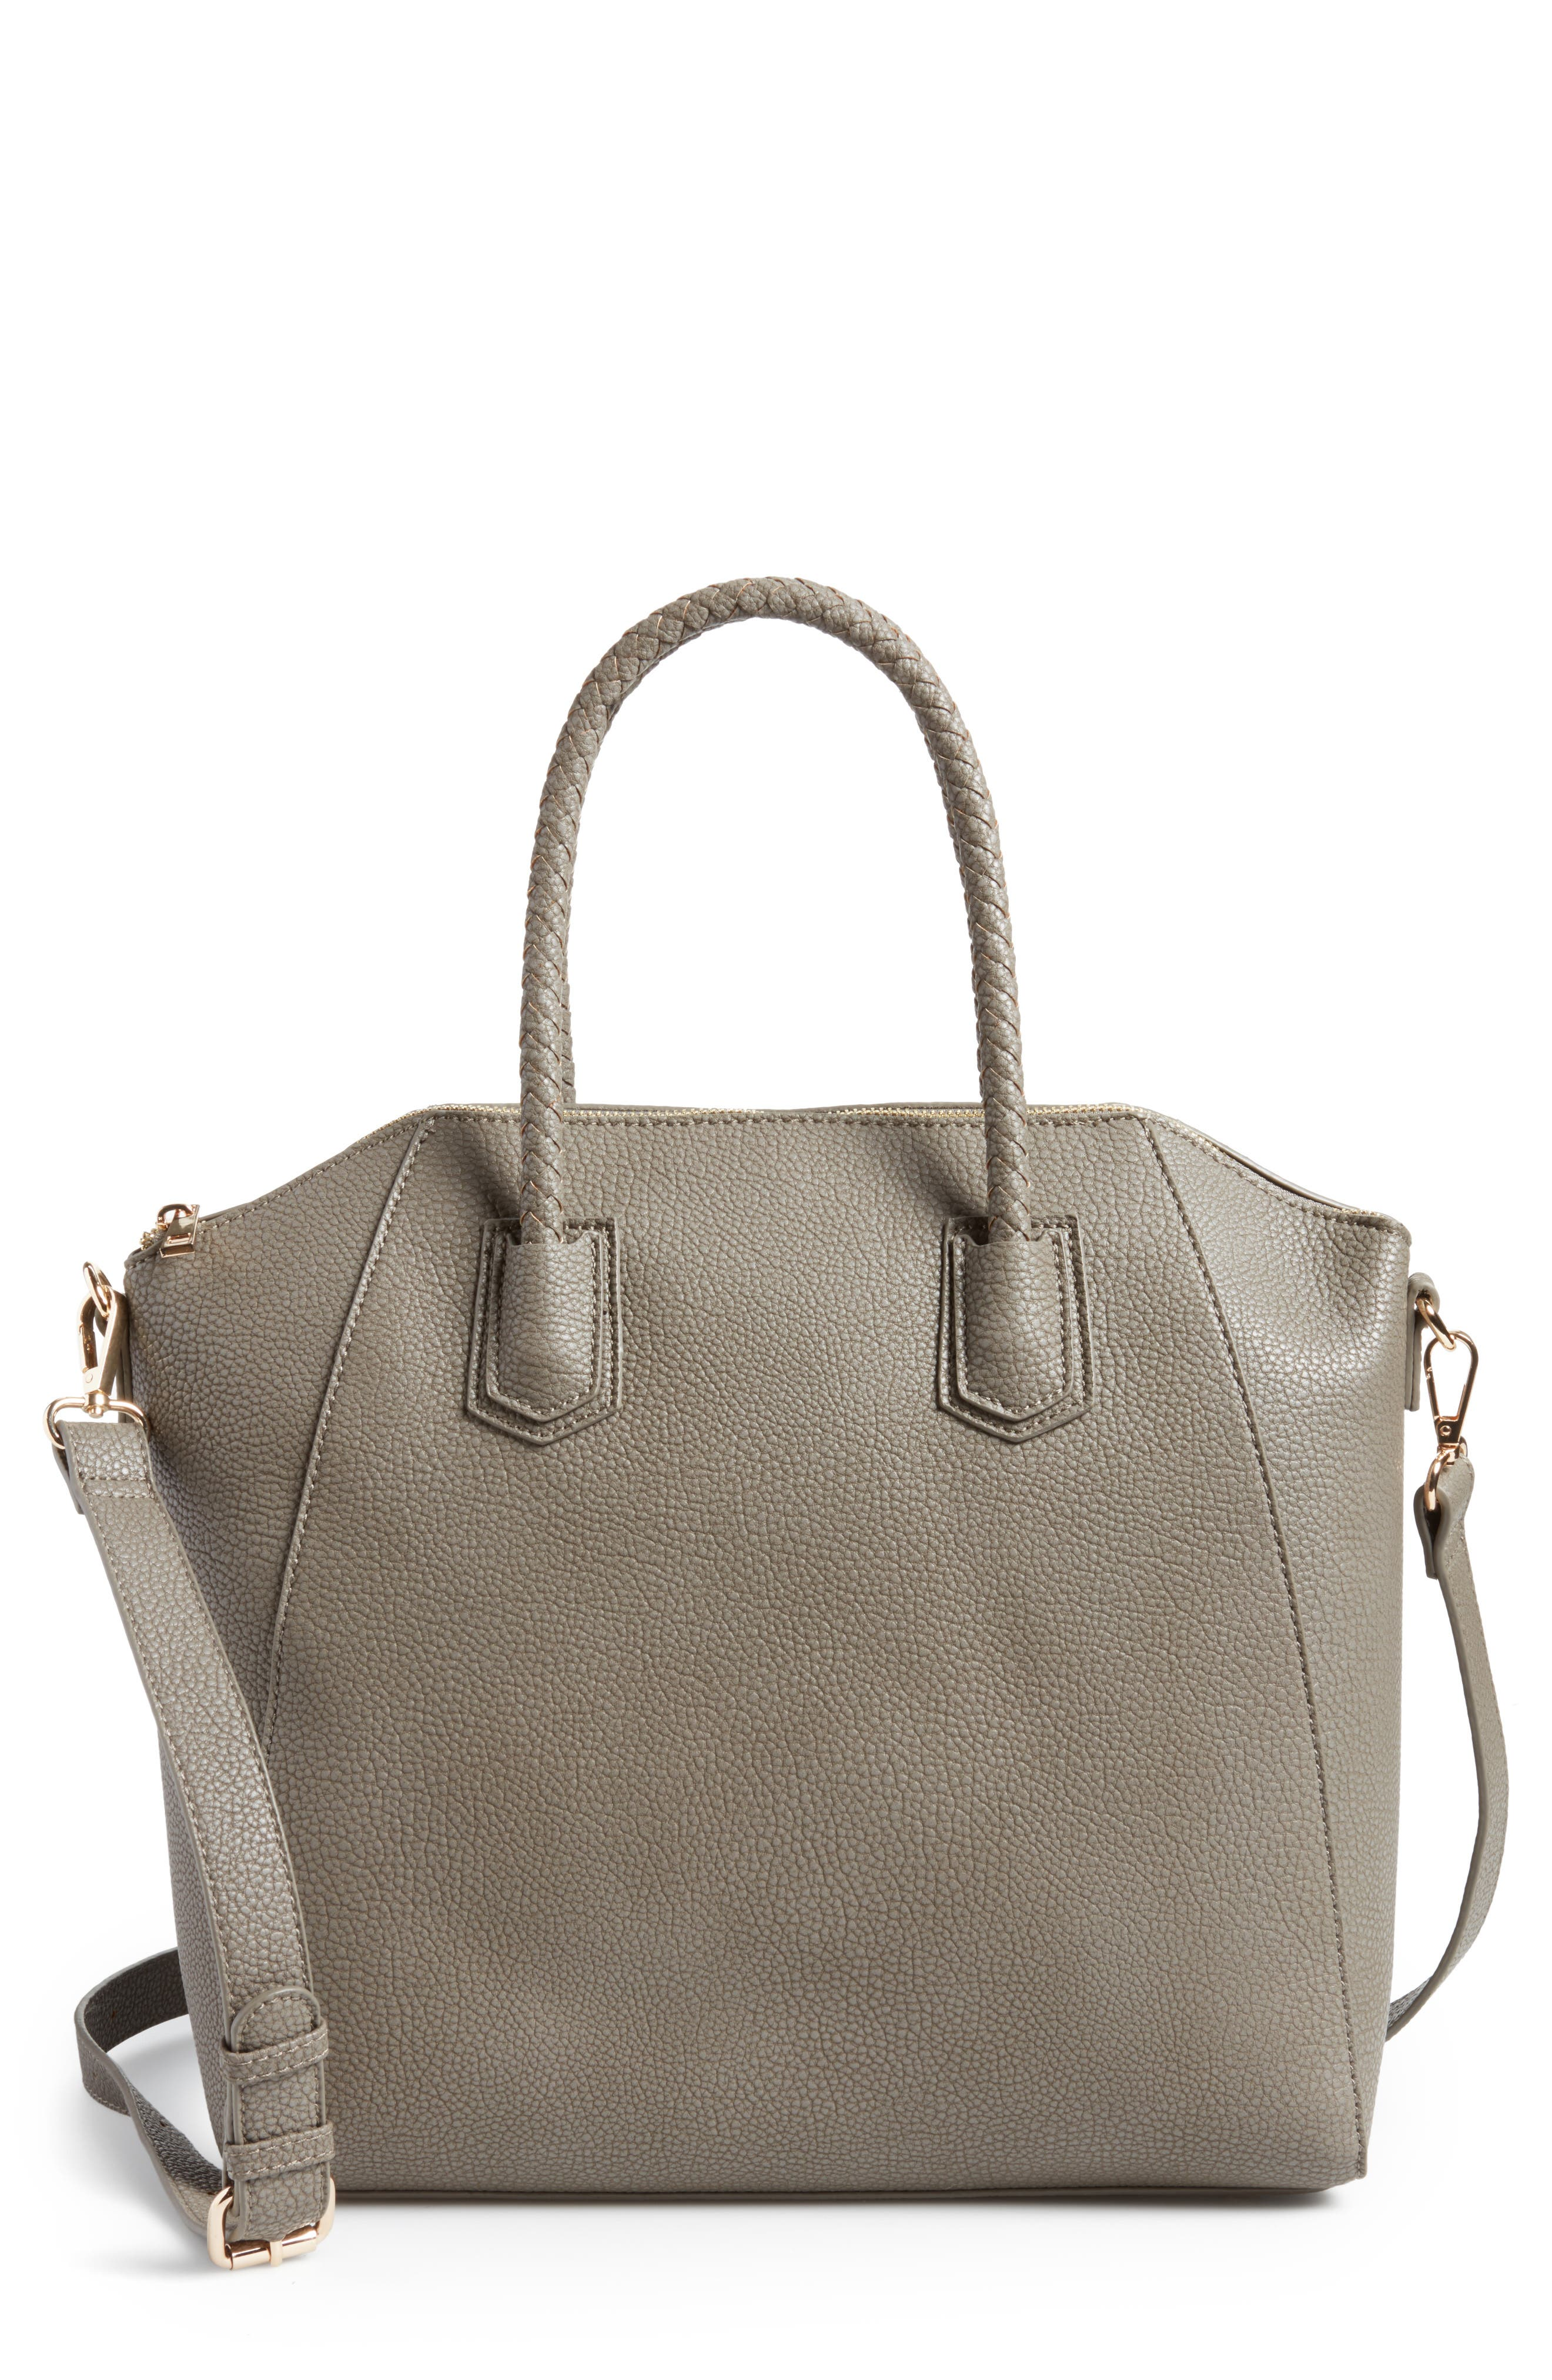 Giada Braided Faux Leather Satchel,                         Main,                         color, Grey